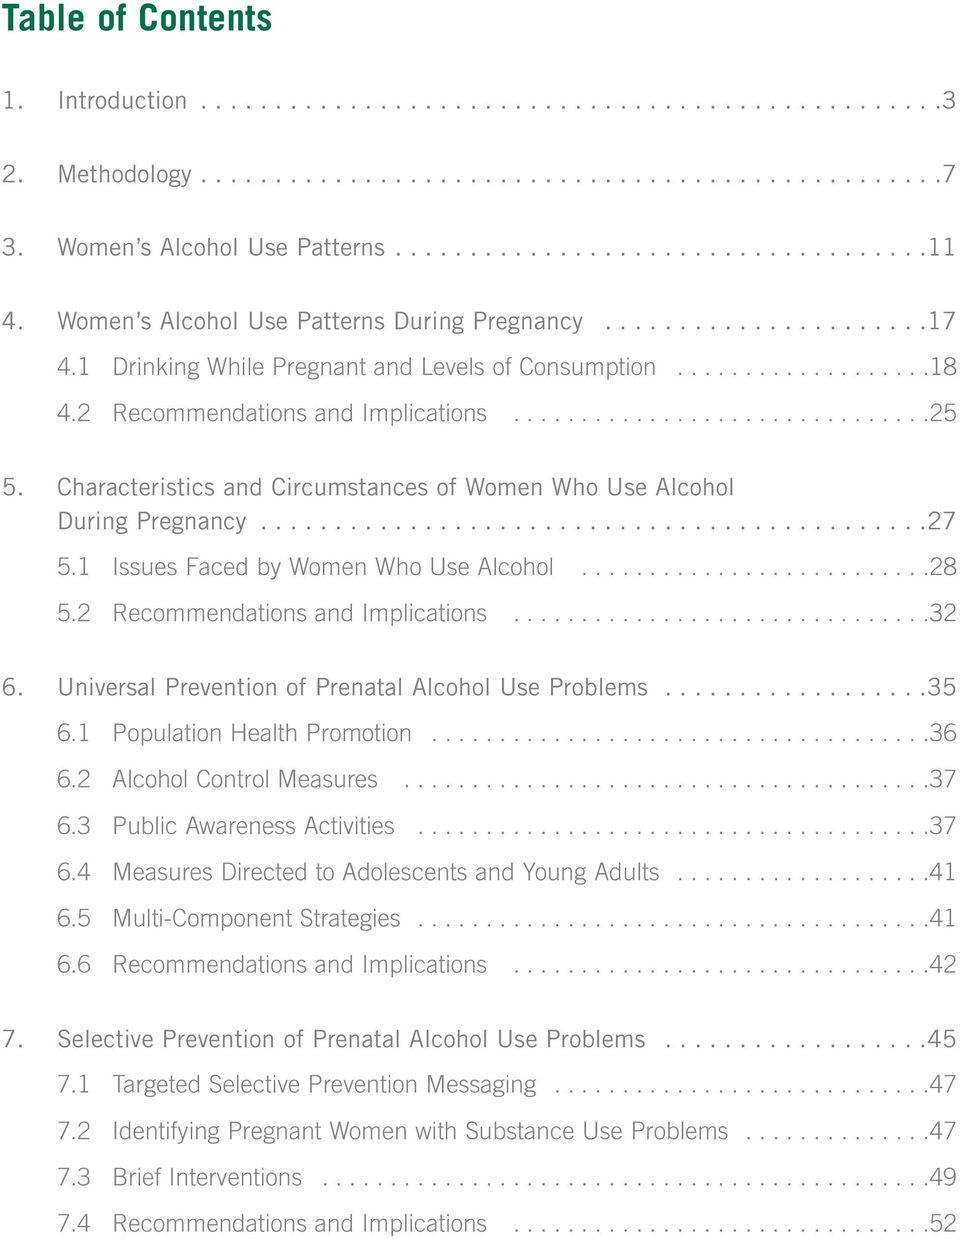 an introduction to the issue of young adults and alcohol Substance abuse among aging adults: a literature substance abuse among aging adults and findings on treatment approaches work with older adults 1 introduction.